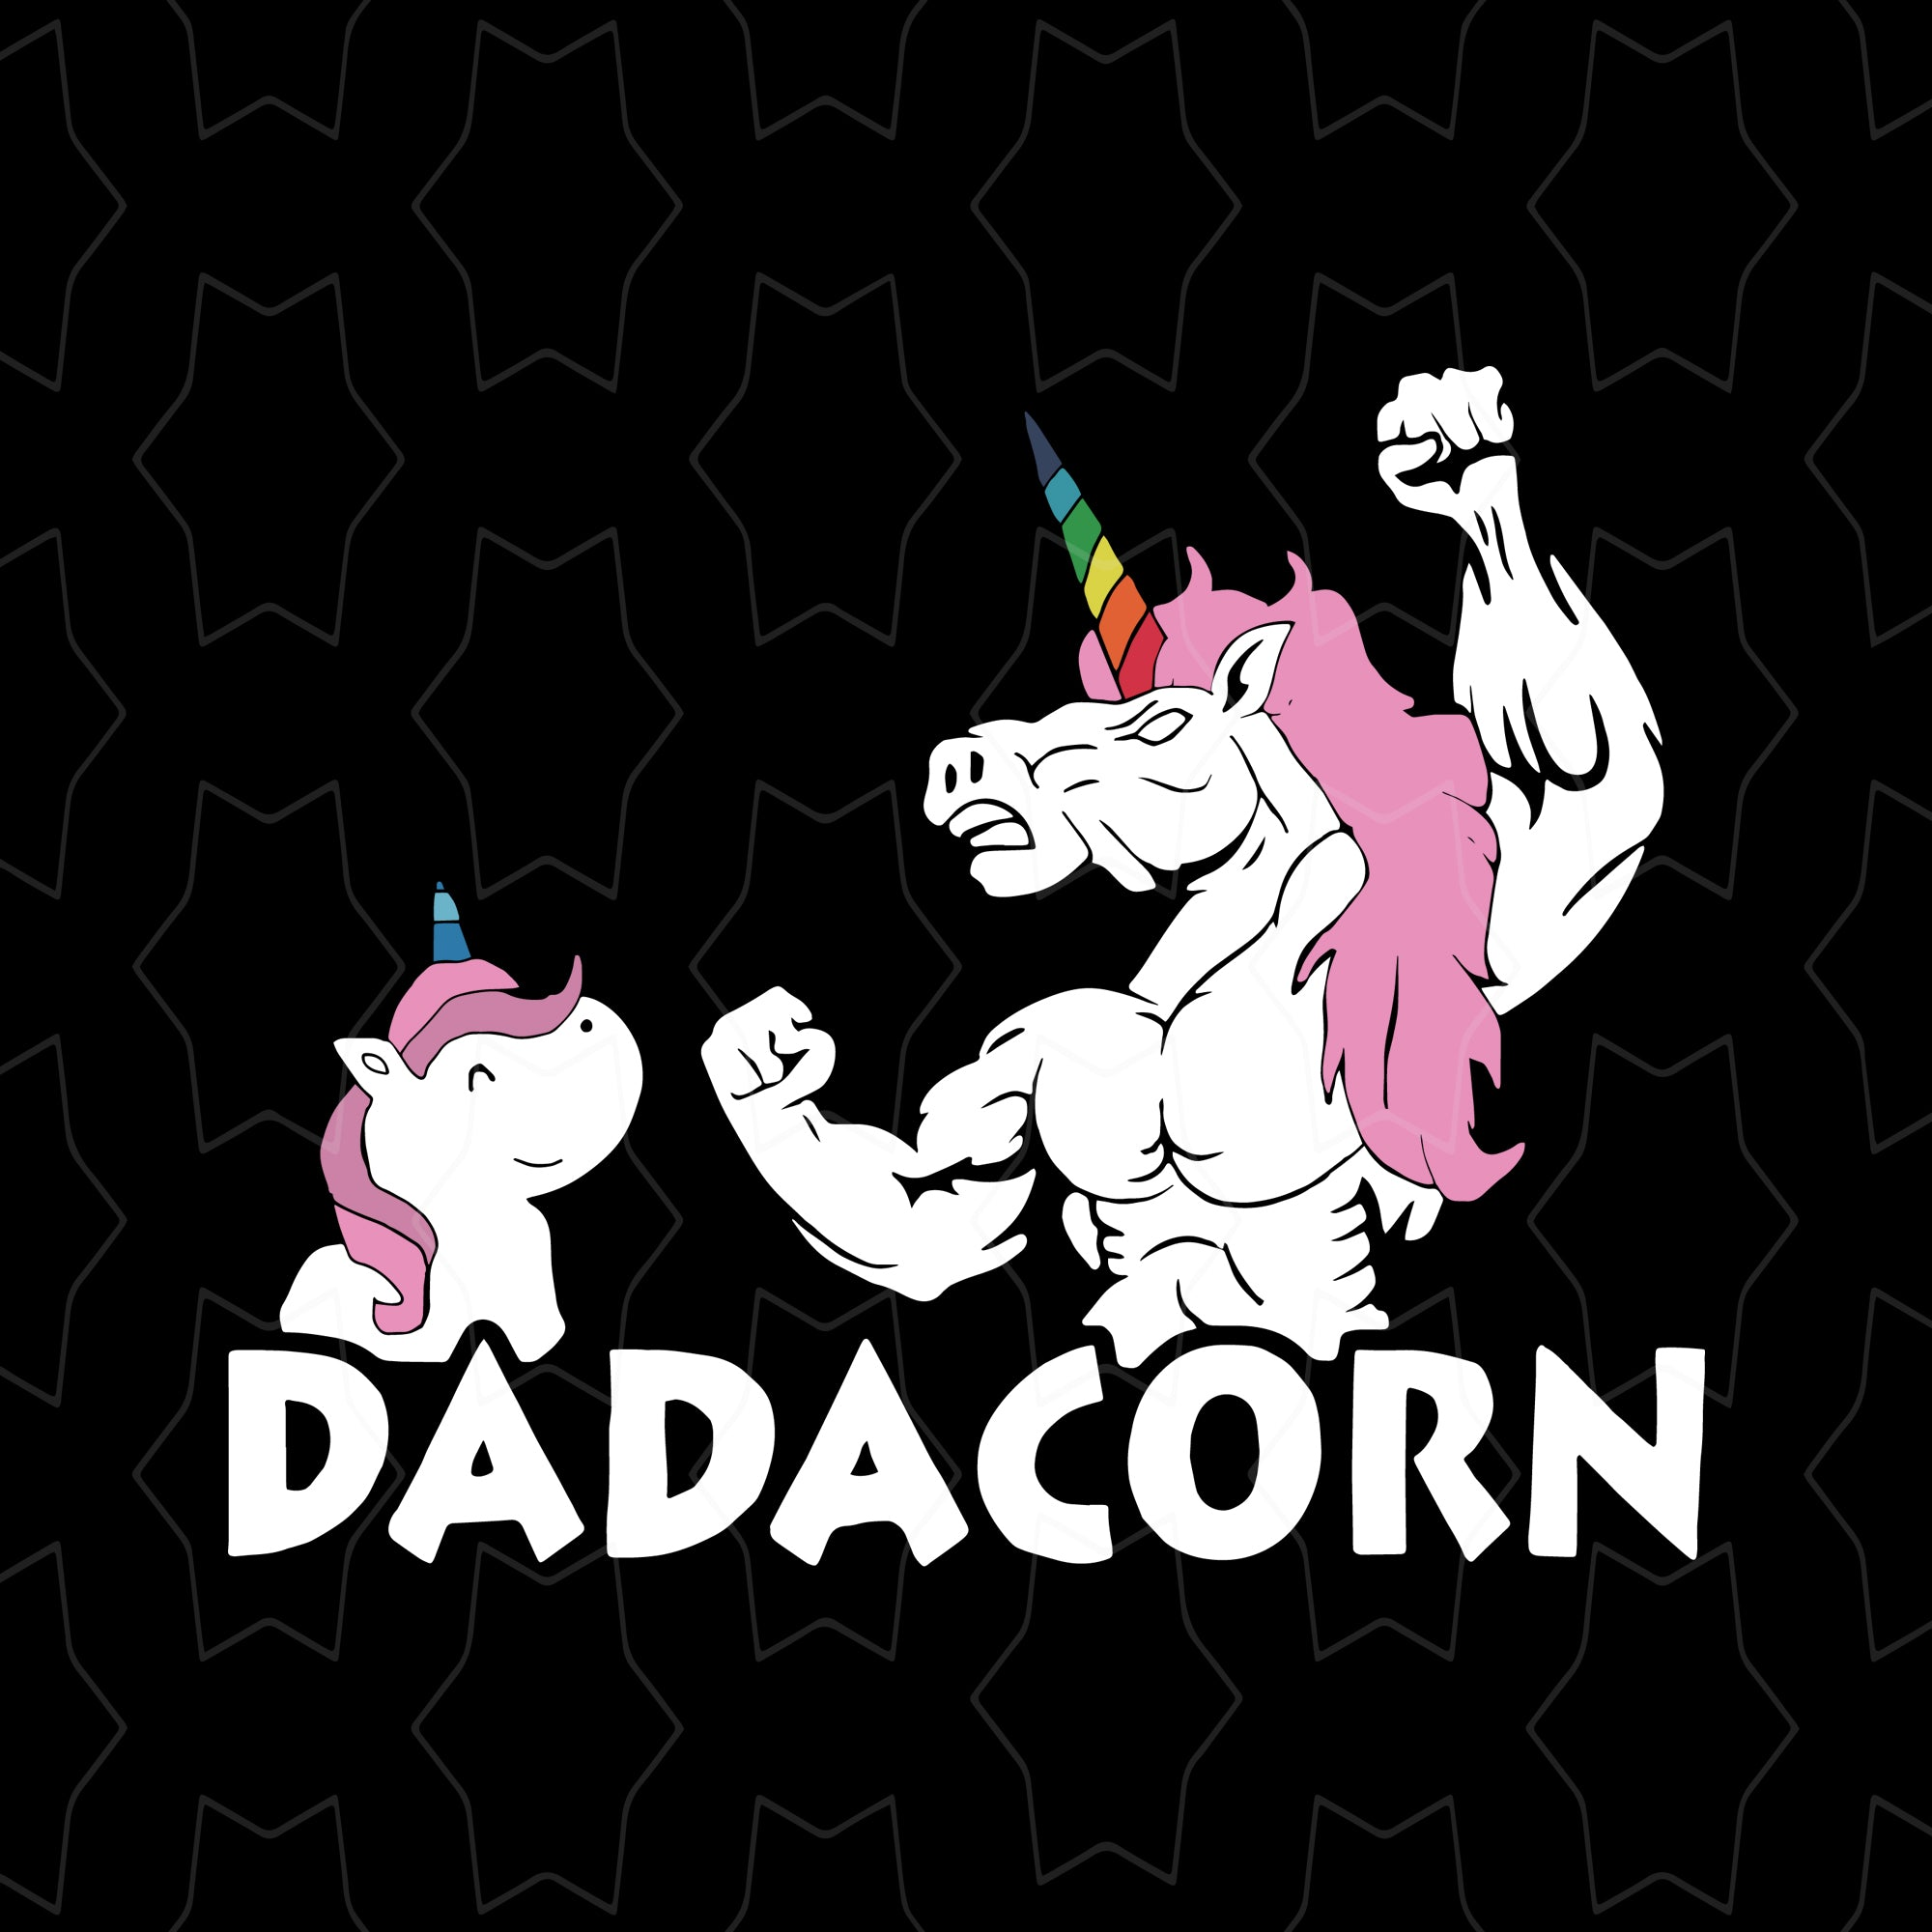 Dadacorn svg, dadacorn unicorn svg, daddy unicorn svg, unicorn dad svg, father's day svg, father day svg, dad svg, png, eps, dxf